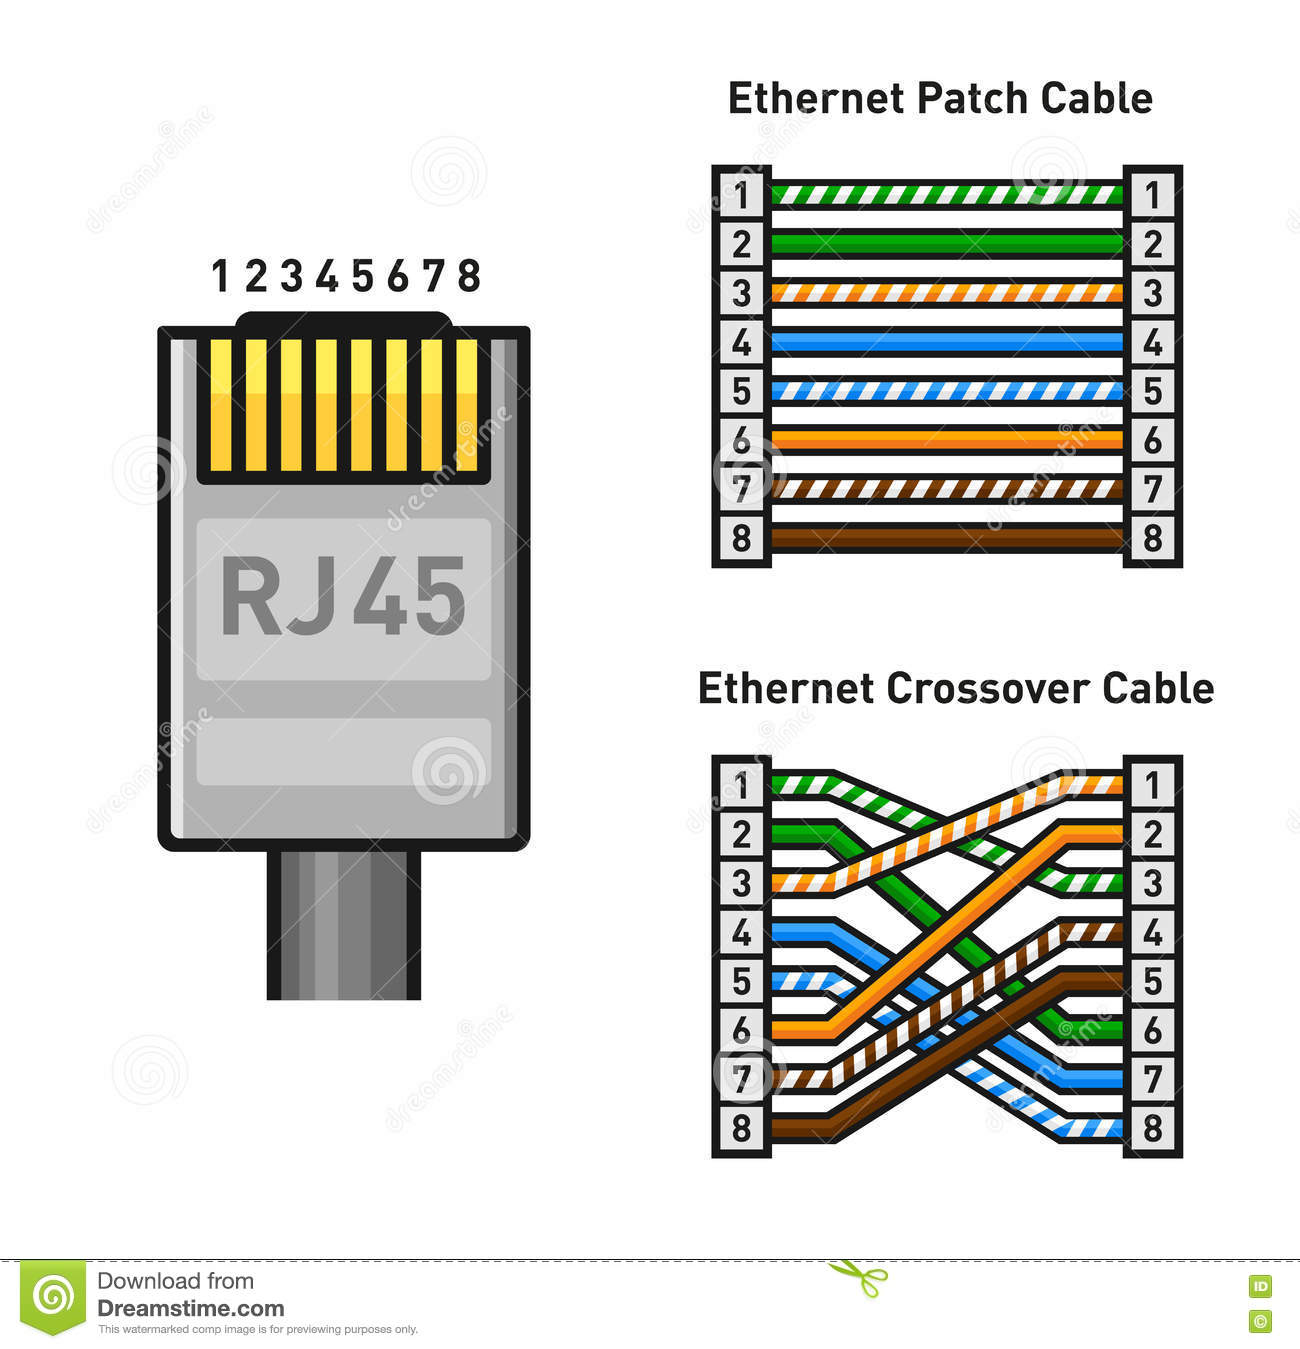 Rj45 Crossover Wiring Manual Guide Diagram Cat5e Diagrams Db15 To Elsalvadorla Make A Cable